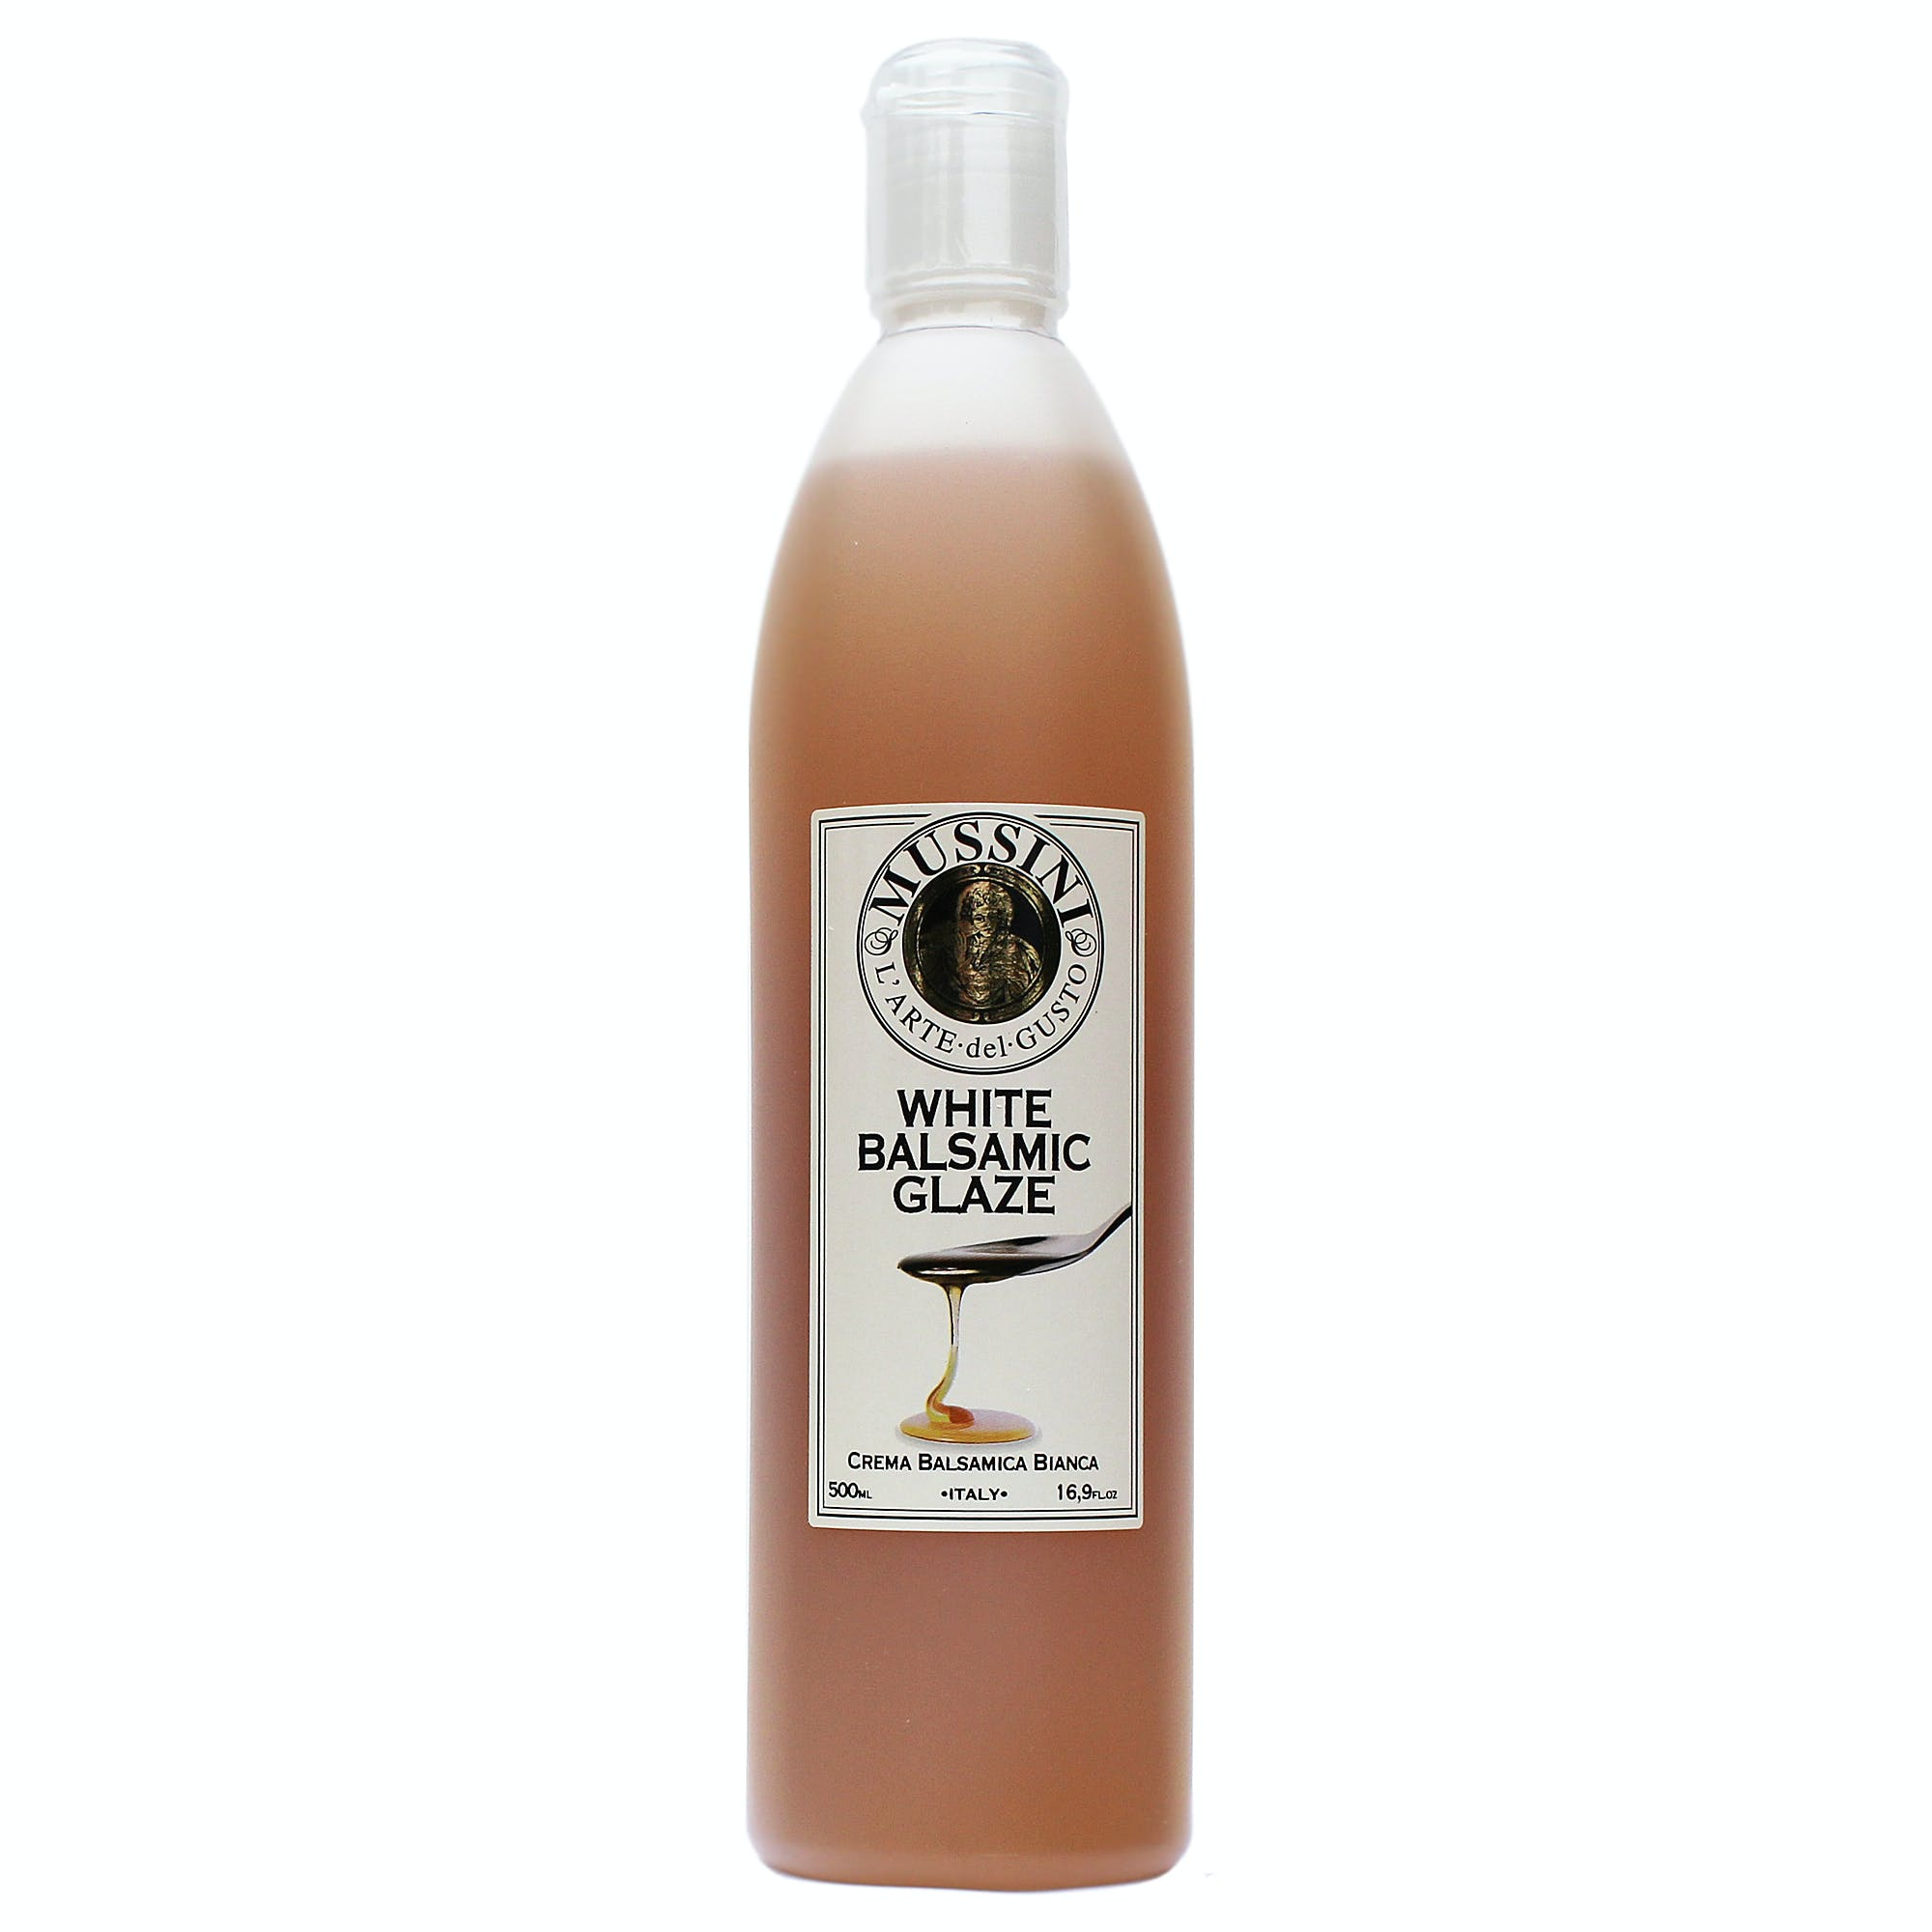 Italian White Balsamic Glazes From Mussini, 16.9 Ounces Balsamic Vinegar sold by M5 Corporation